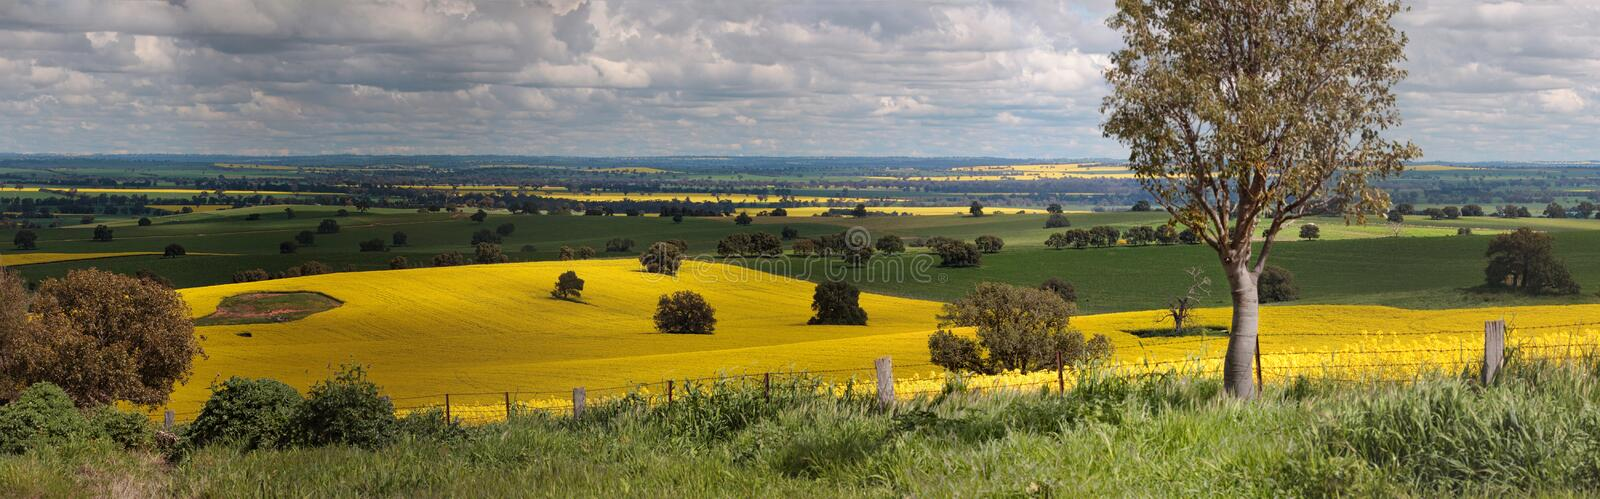 Rural farmlands panorama. Miles and miles of countryside views.... Rural panorama of farmlands across Bumbaldry and Greenthorpe in Central West NSW royalty free stock photography